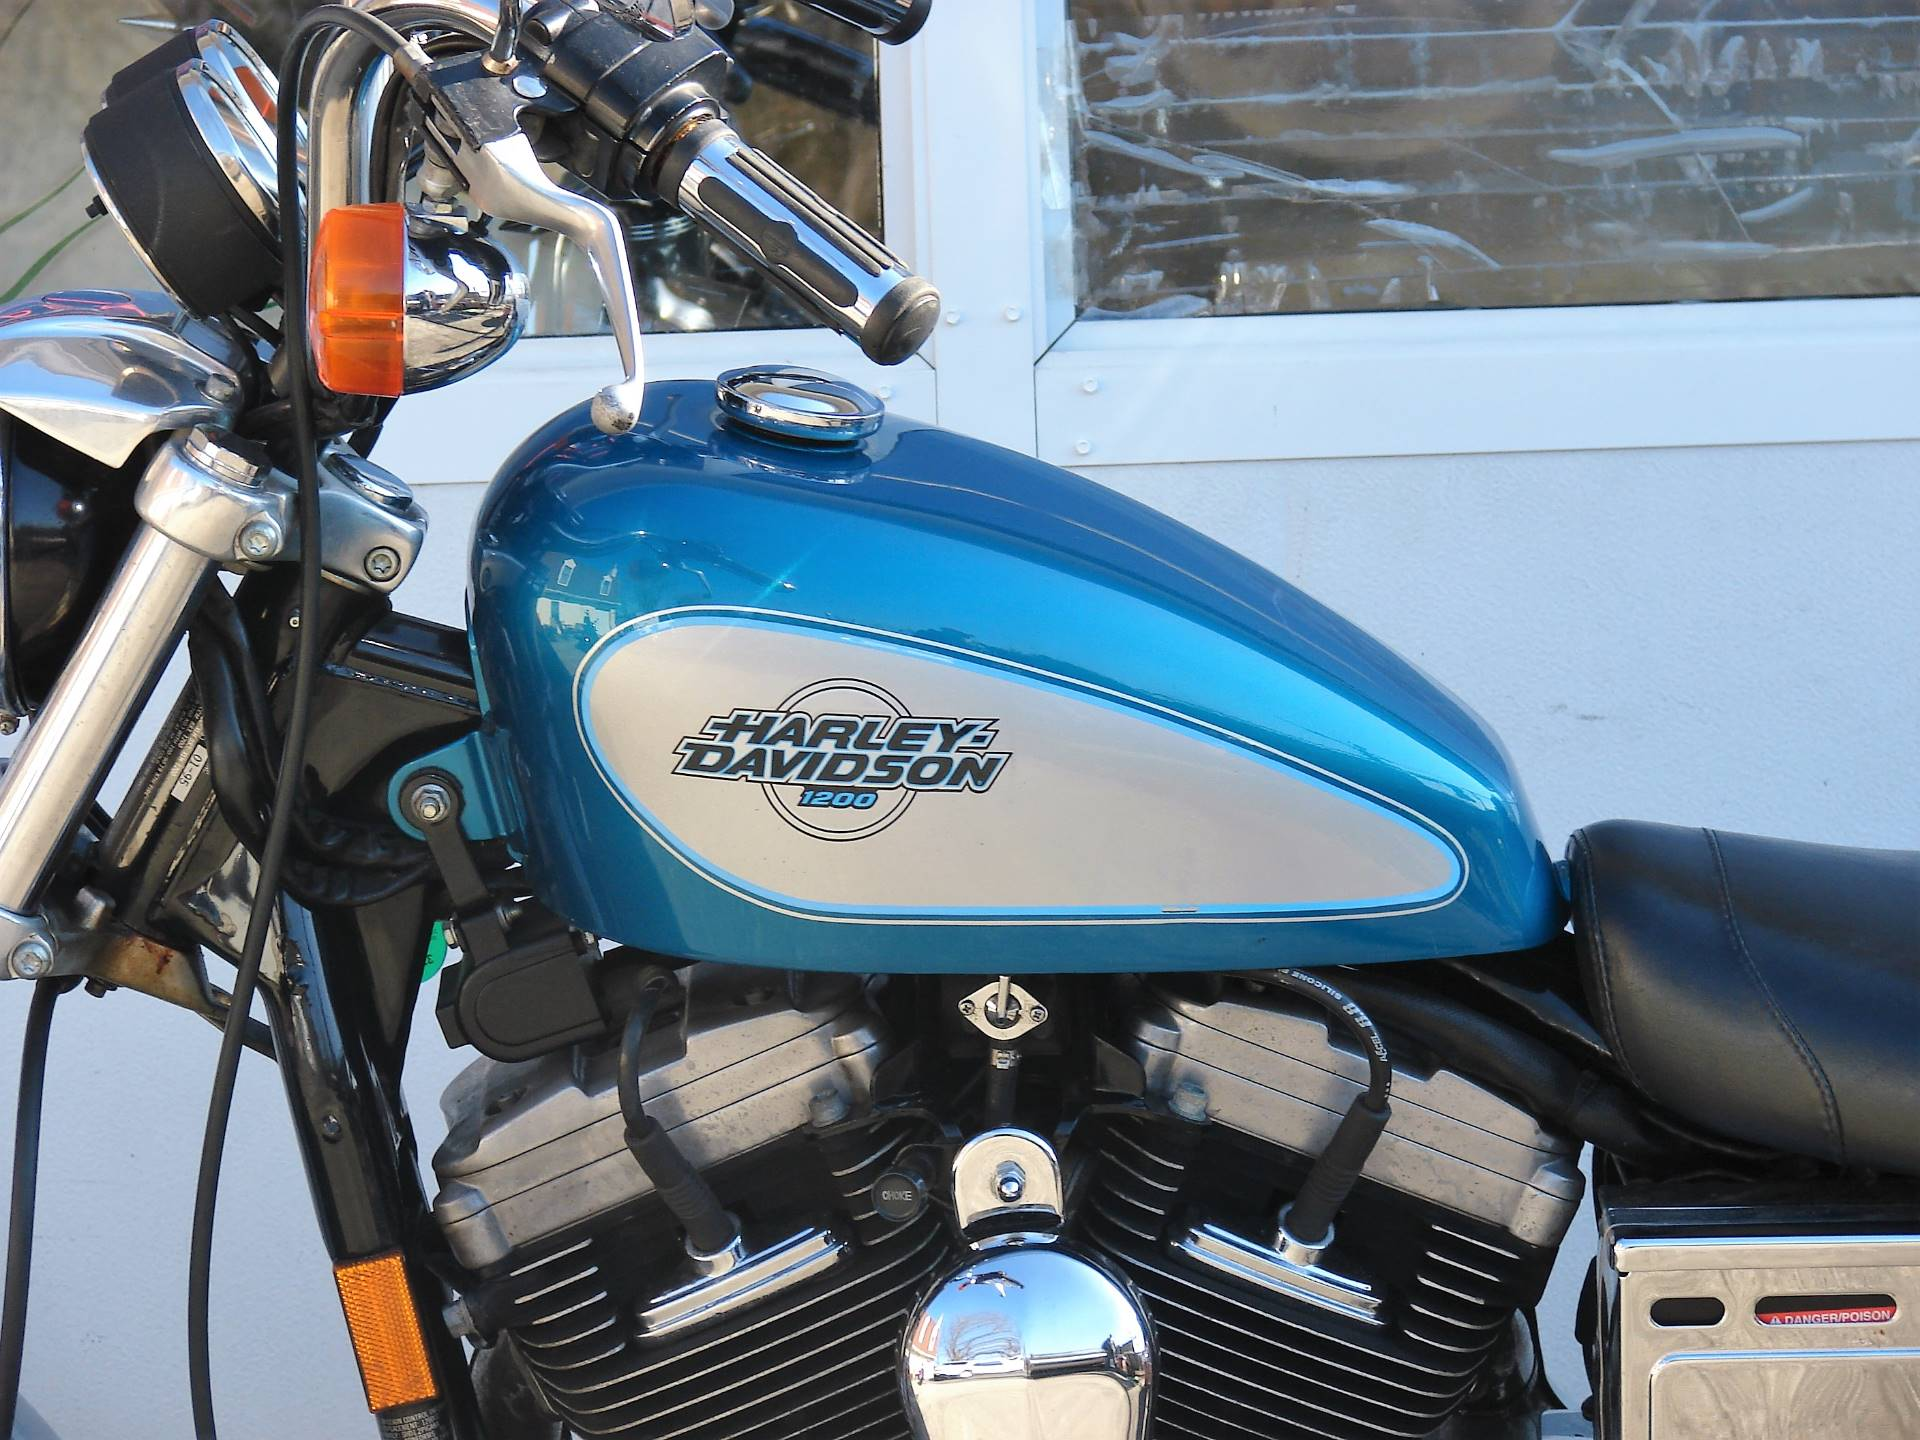 1995 Harley-Davidson 1200 Sportster  (Teal Blue and Silver) in Williamstown, New Jersey - Photo 7